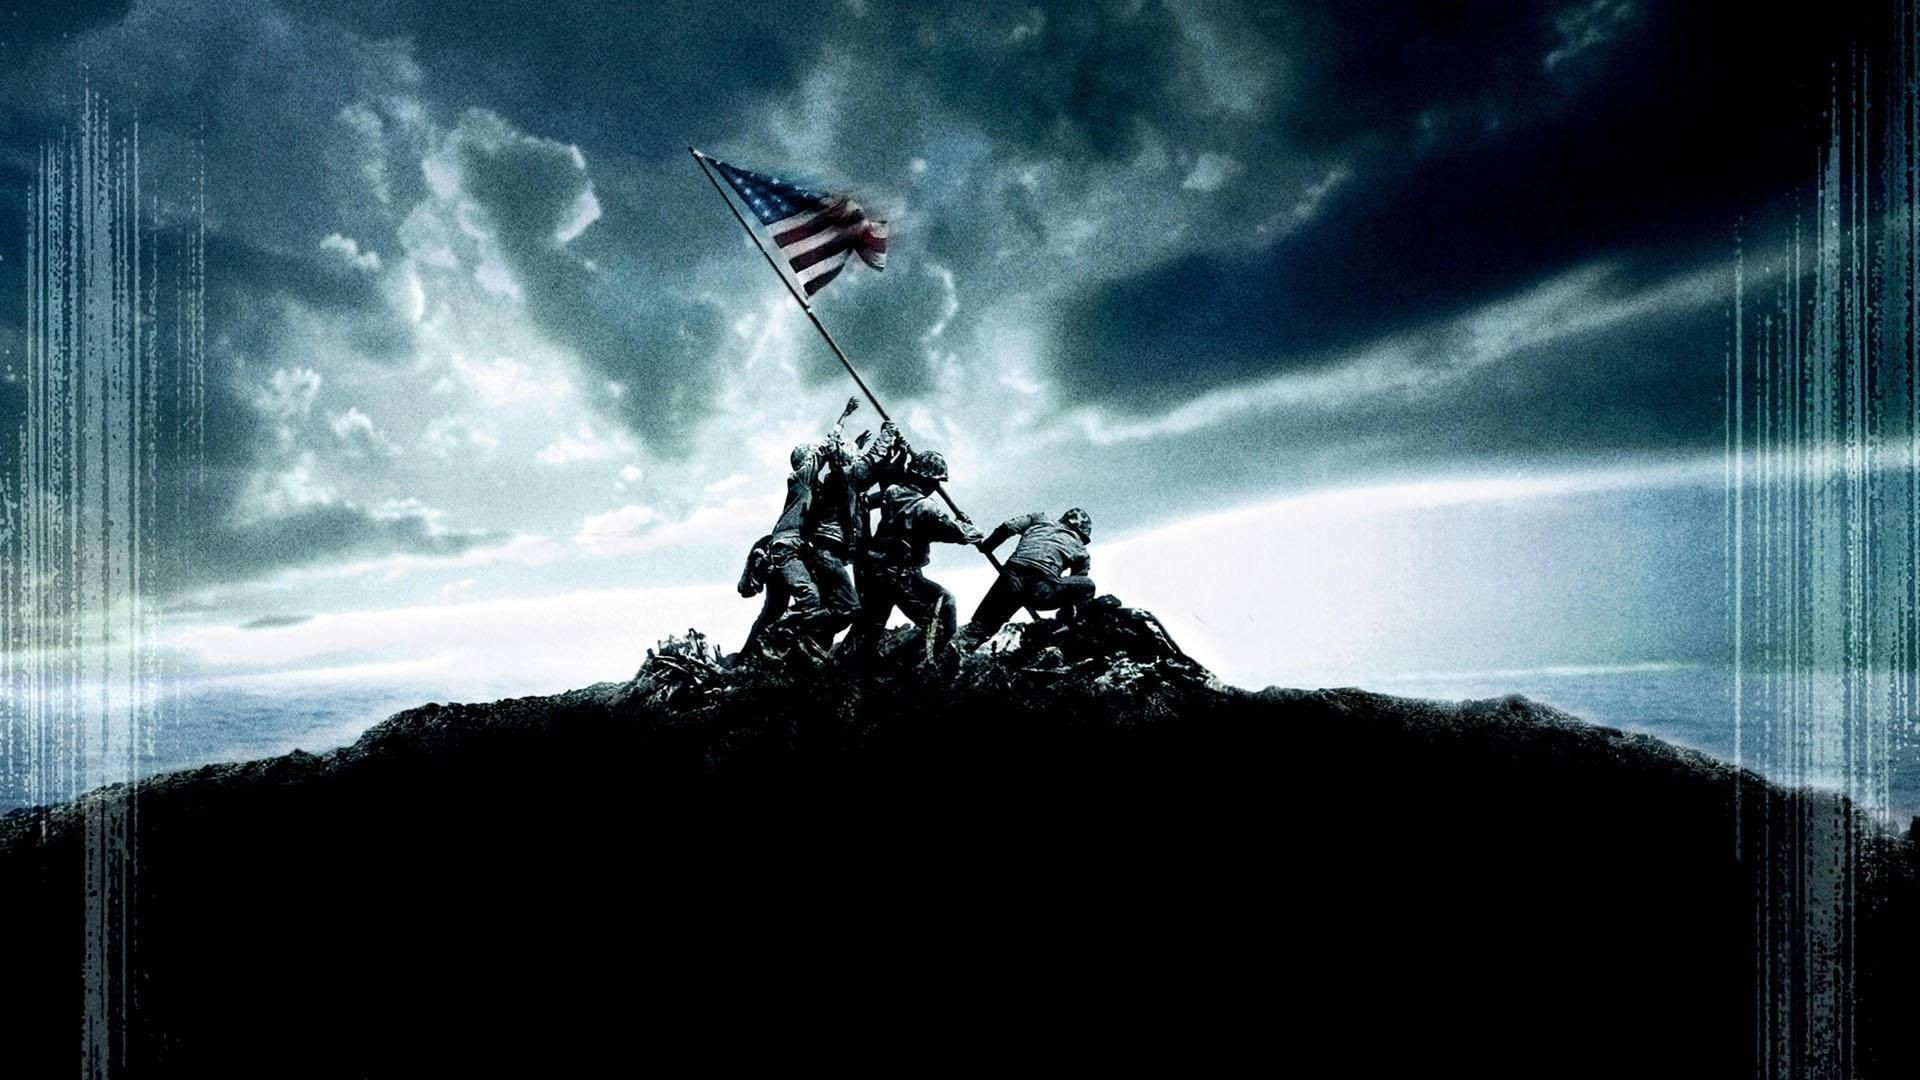 Res: 1920x1080, US Marines Desktop Wallpaper | US Marines Images | Cool Wallpapers